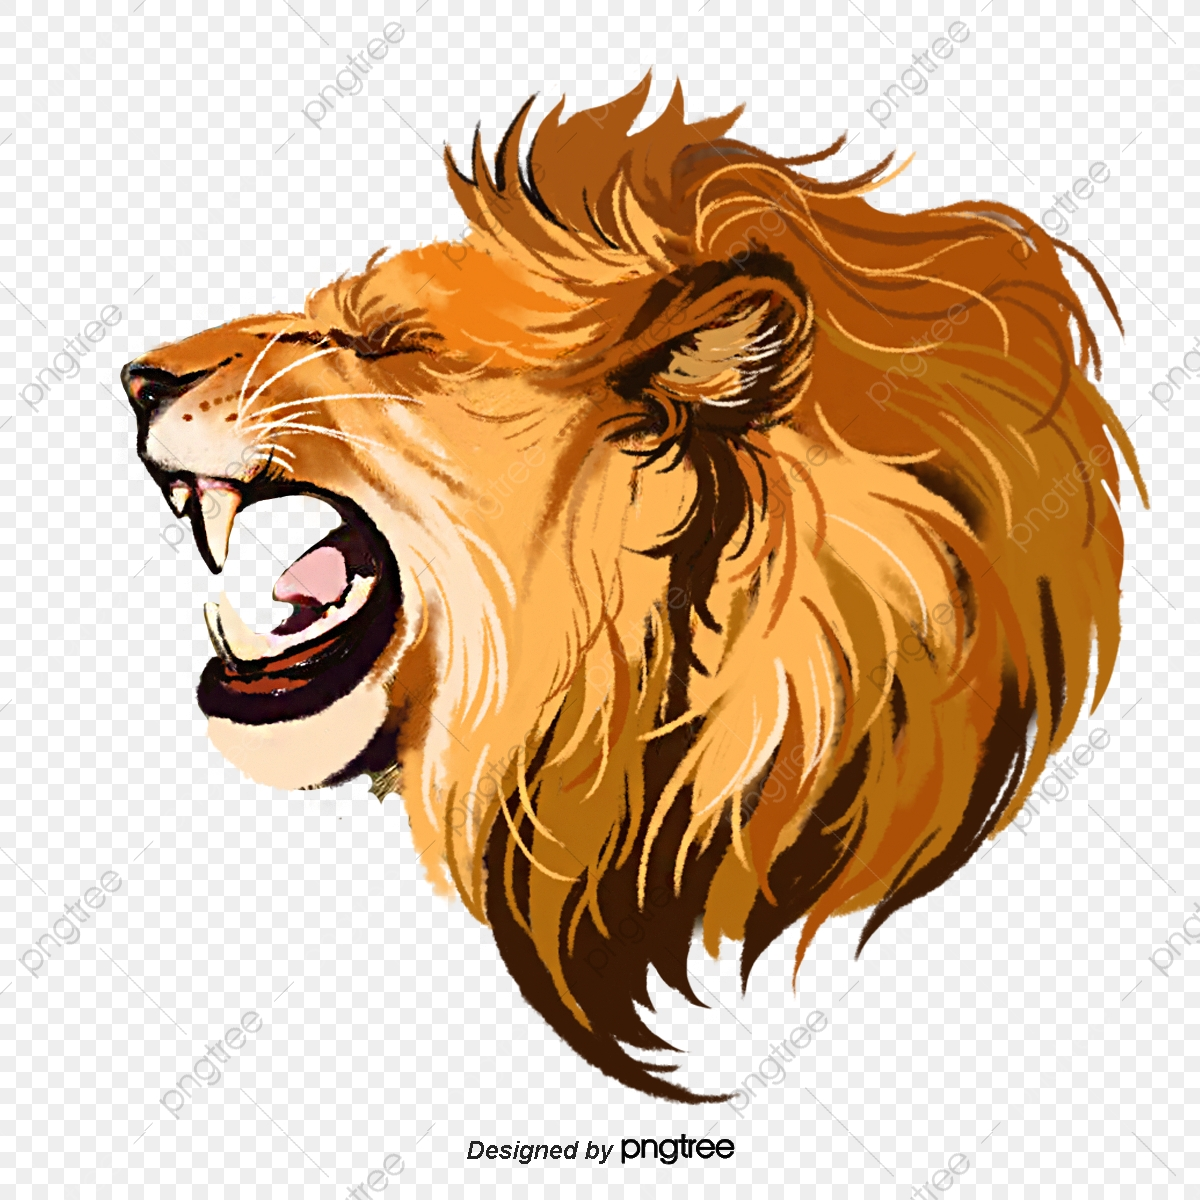 Hand Painted Elements Of Lion Roar Beast Male Lion Ferocious Roar Png Transparent Clipart Image And Psd File For Free Download